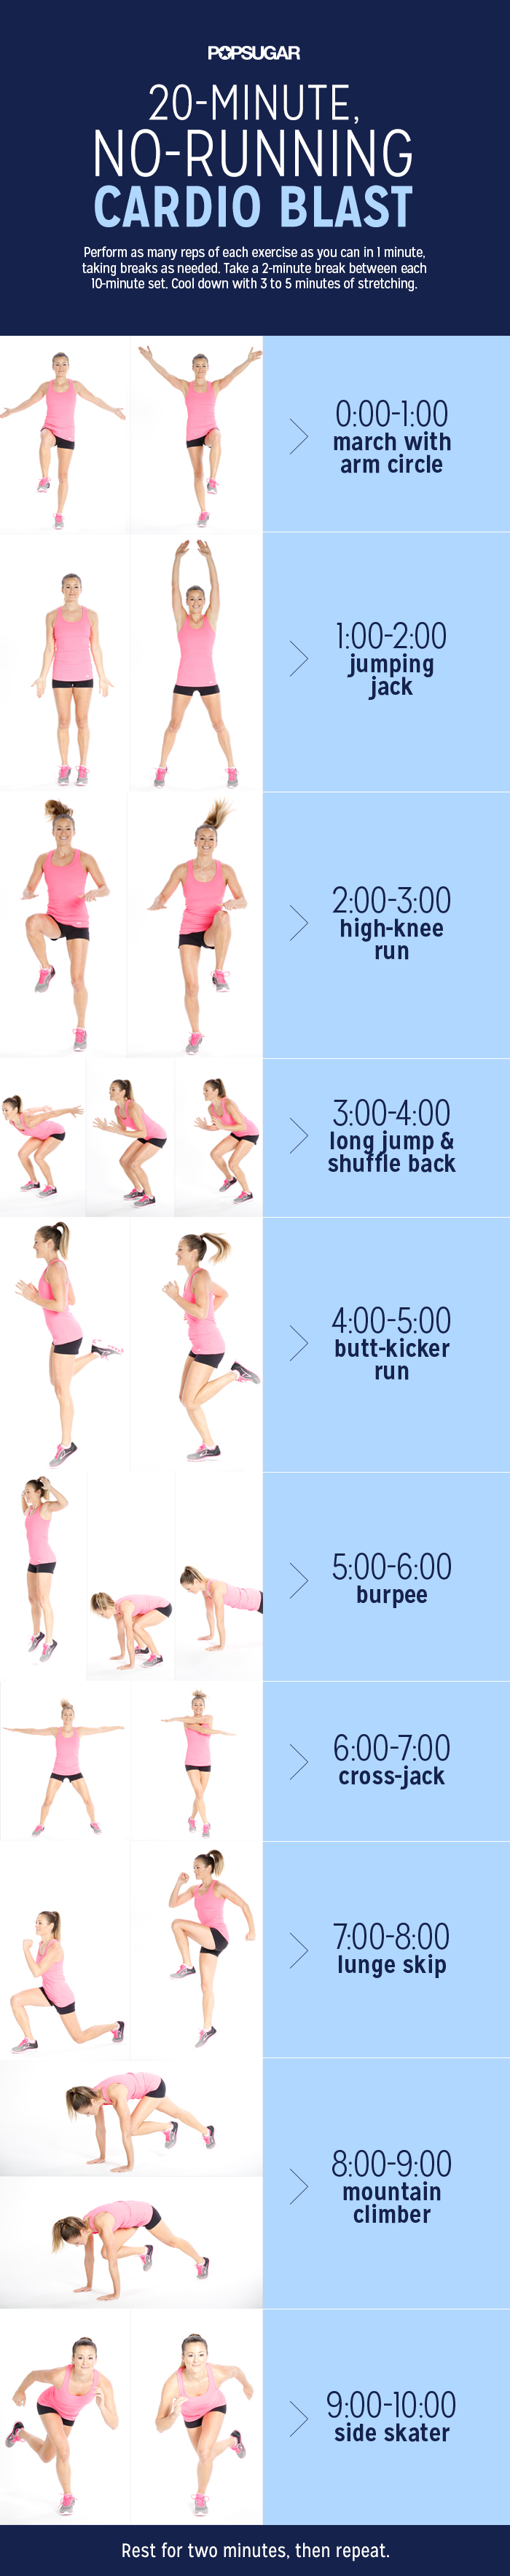 20 Minute At Home Cardio Workout With No Running Popsugar Fitness Australia